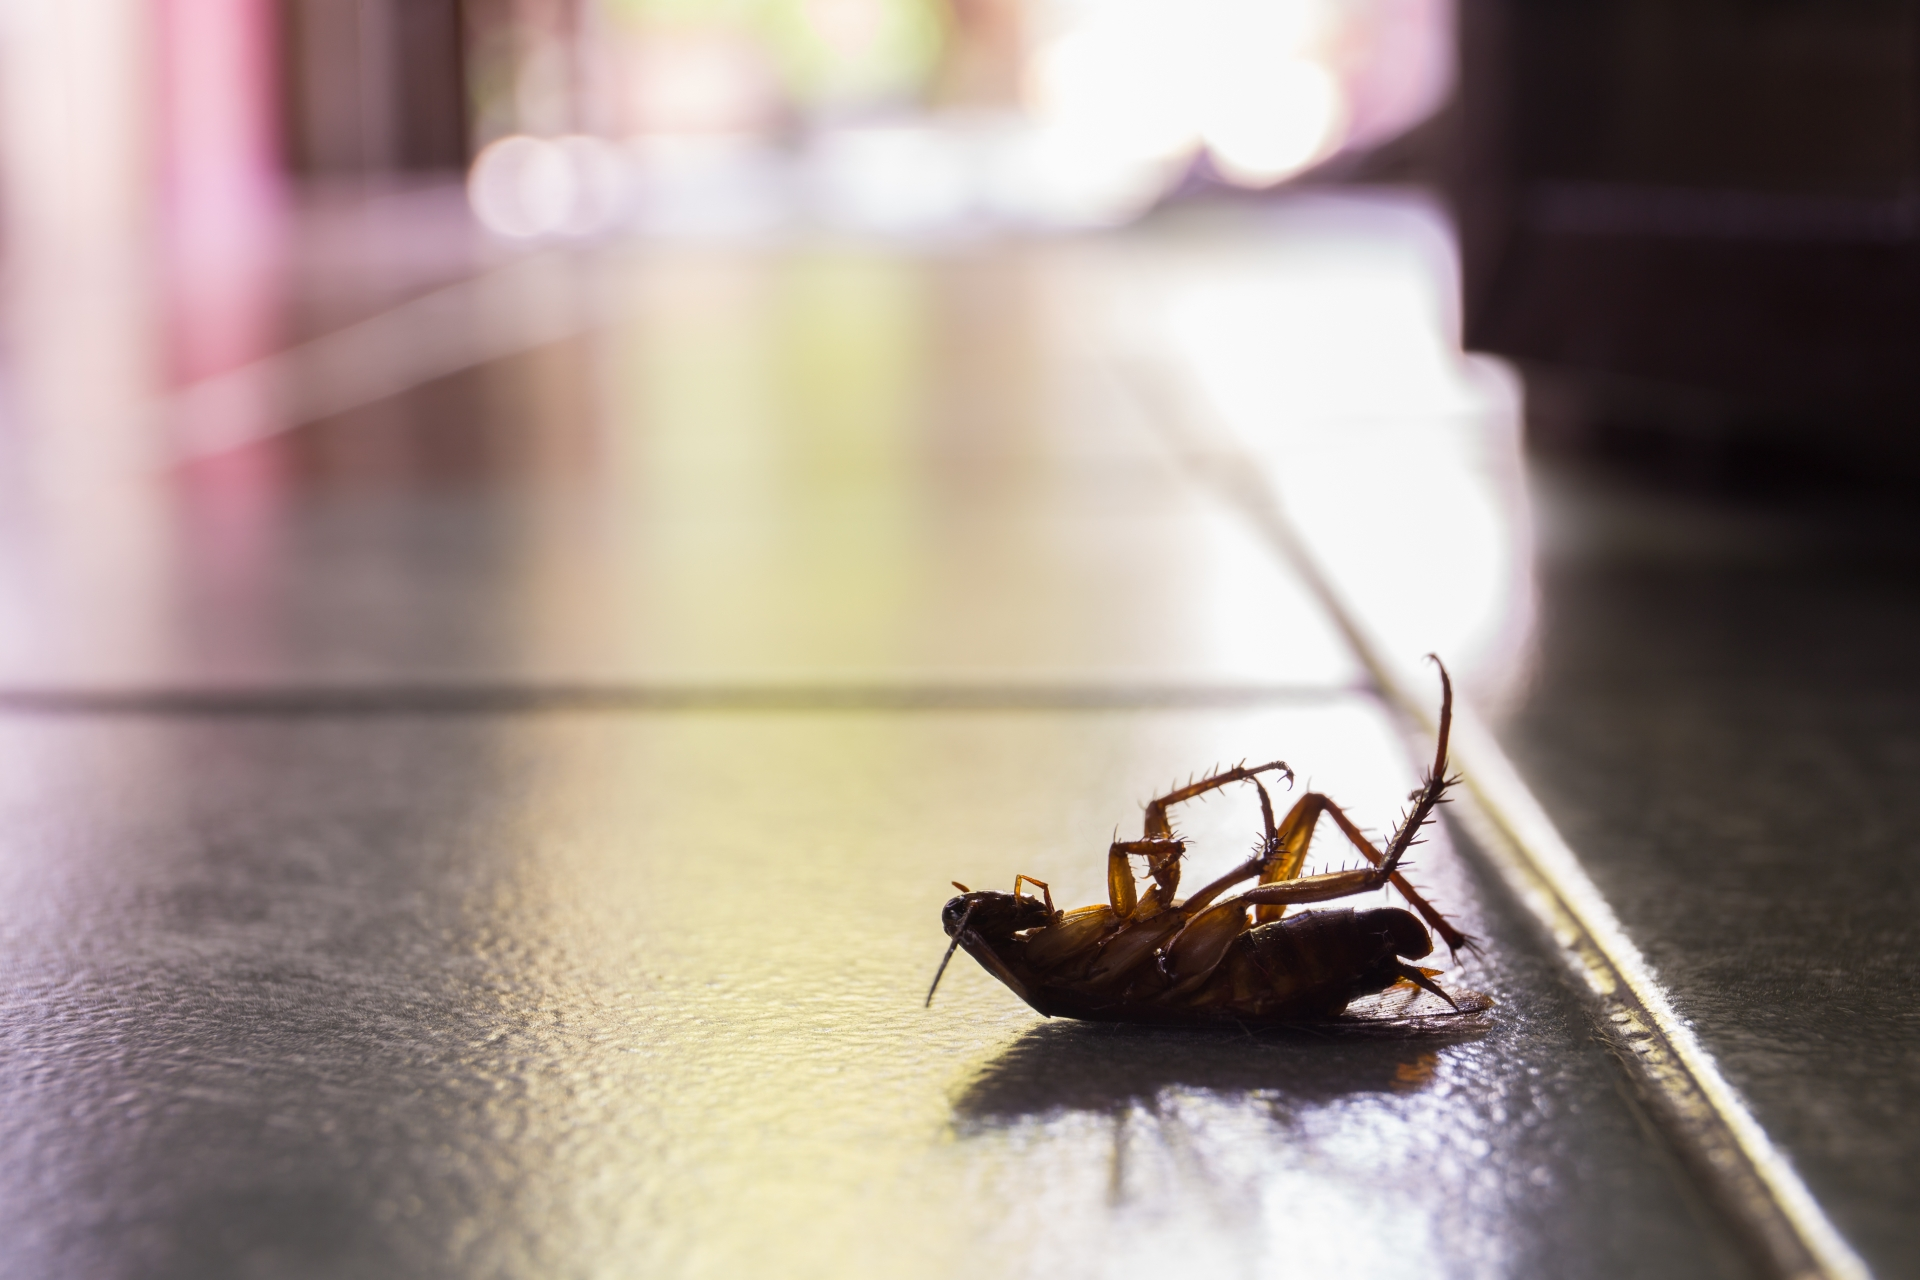 Cockroach Control, Pest Control in Kew, North Sheen, TW9. Call Now 020 8166 9746